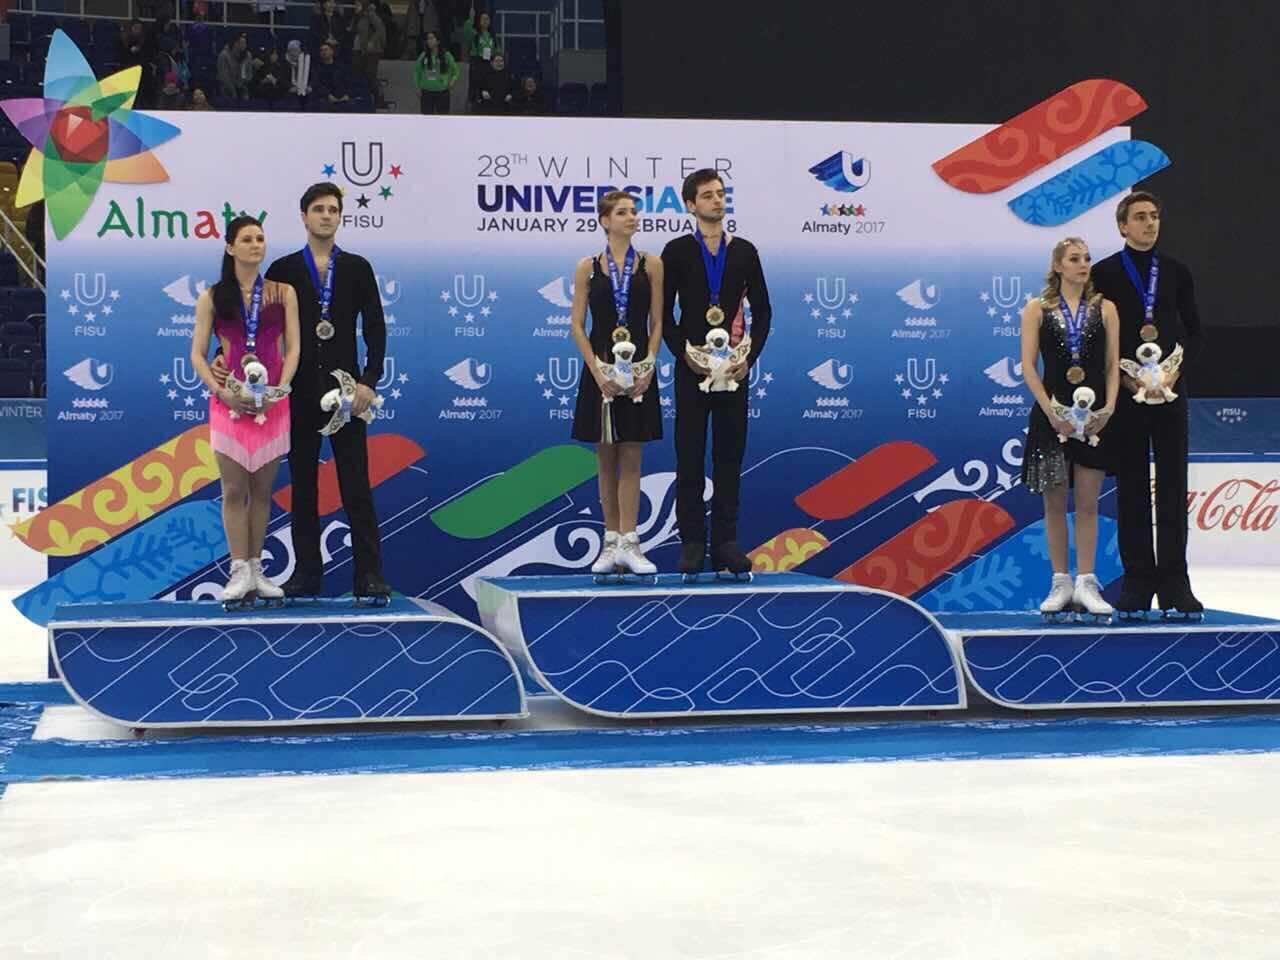 Award ceremony on Universiada 2017 in Almaty. Oleksandra Nazarova and Maksim Nikitin are champions of the Universiada.